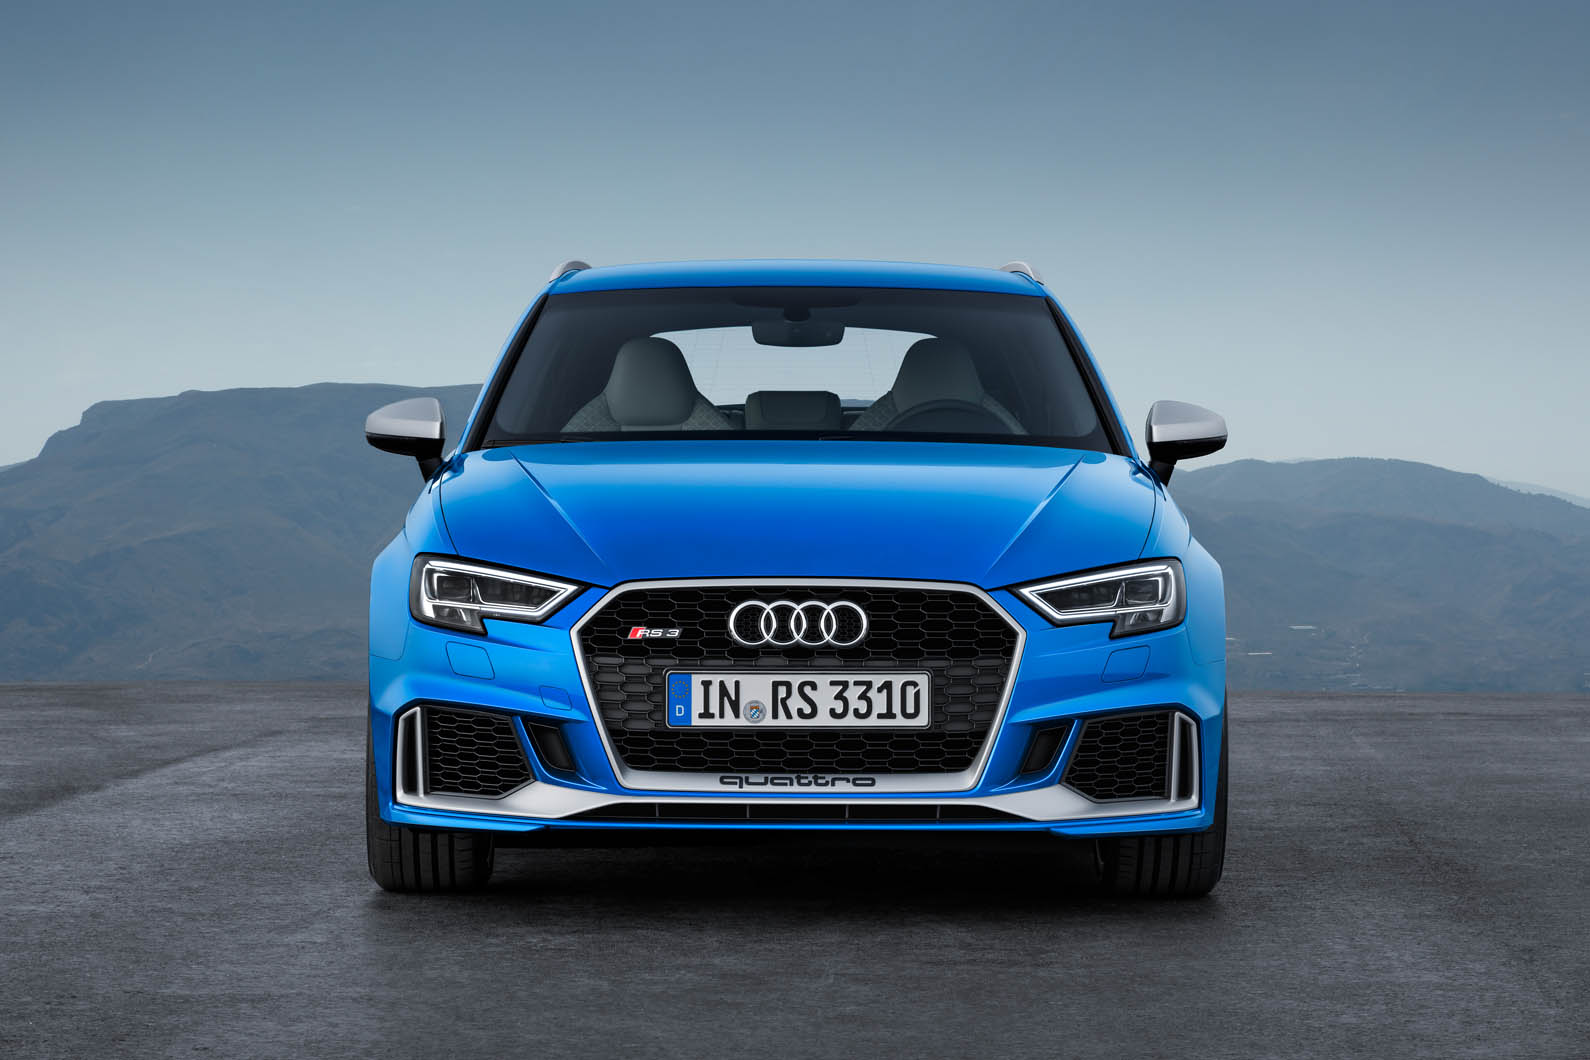 Famous Audi brand introduced RS3 in a new version and configuration